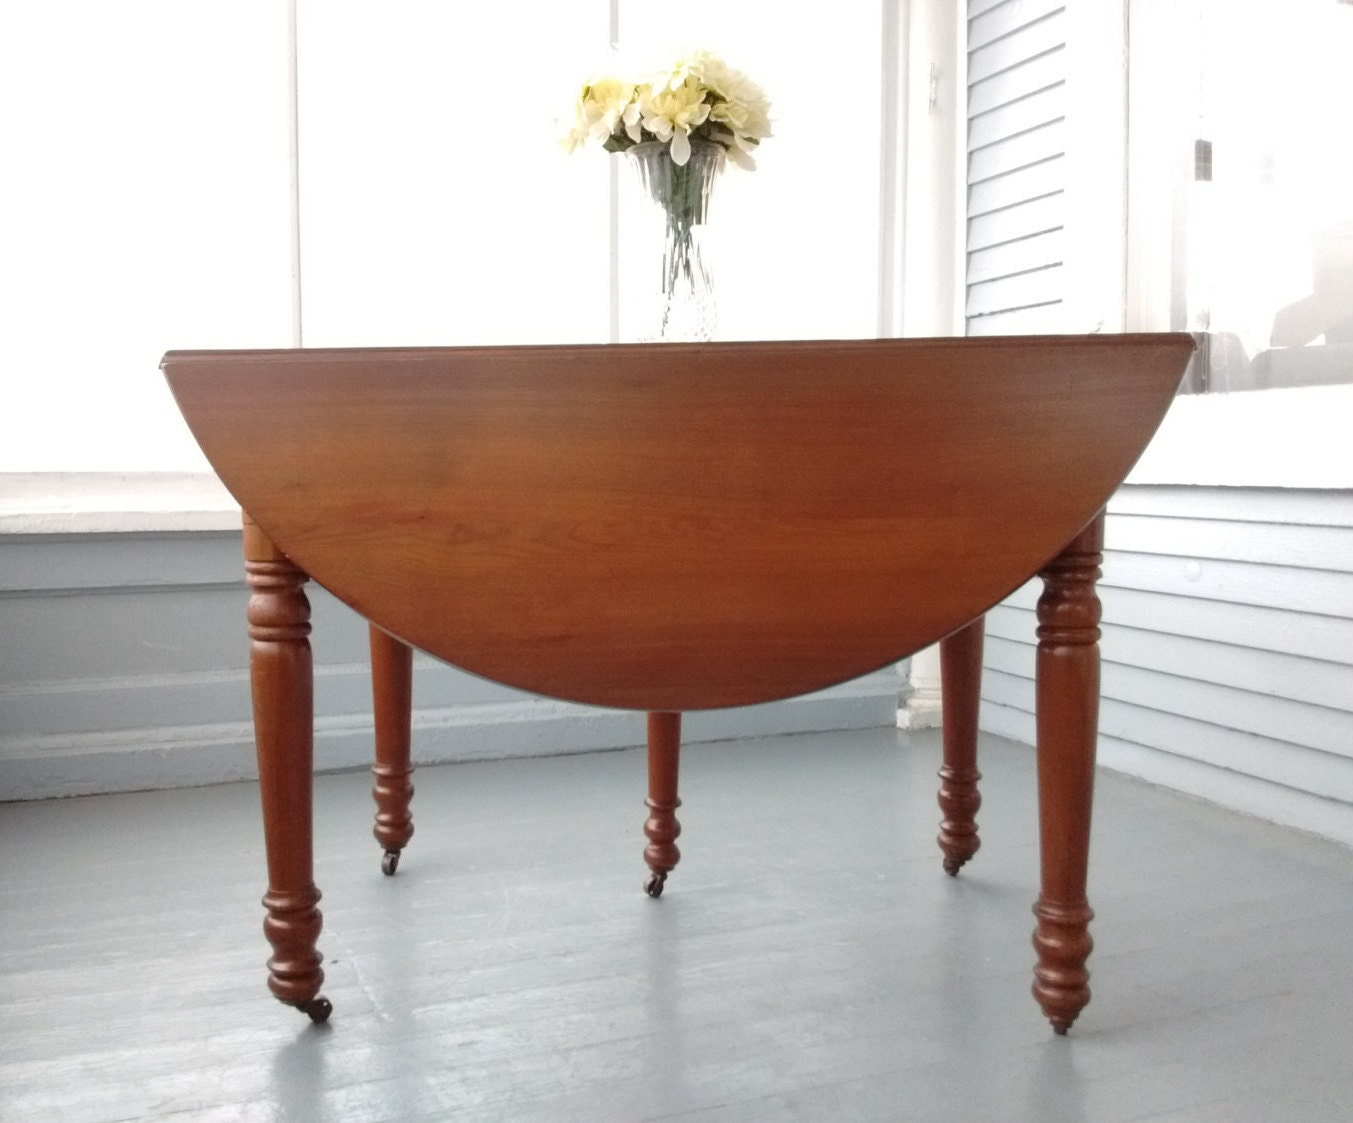 Sale antique drop leaf table kitchen table dining table for Round kitchen table with leaf